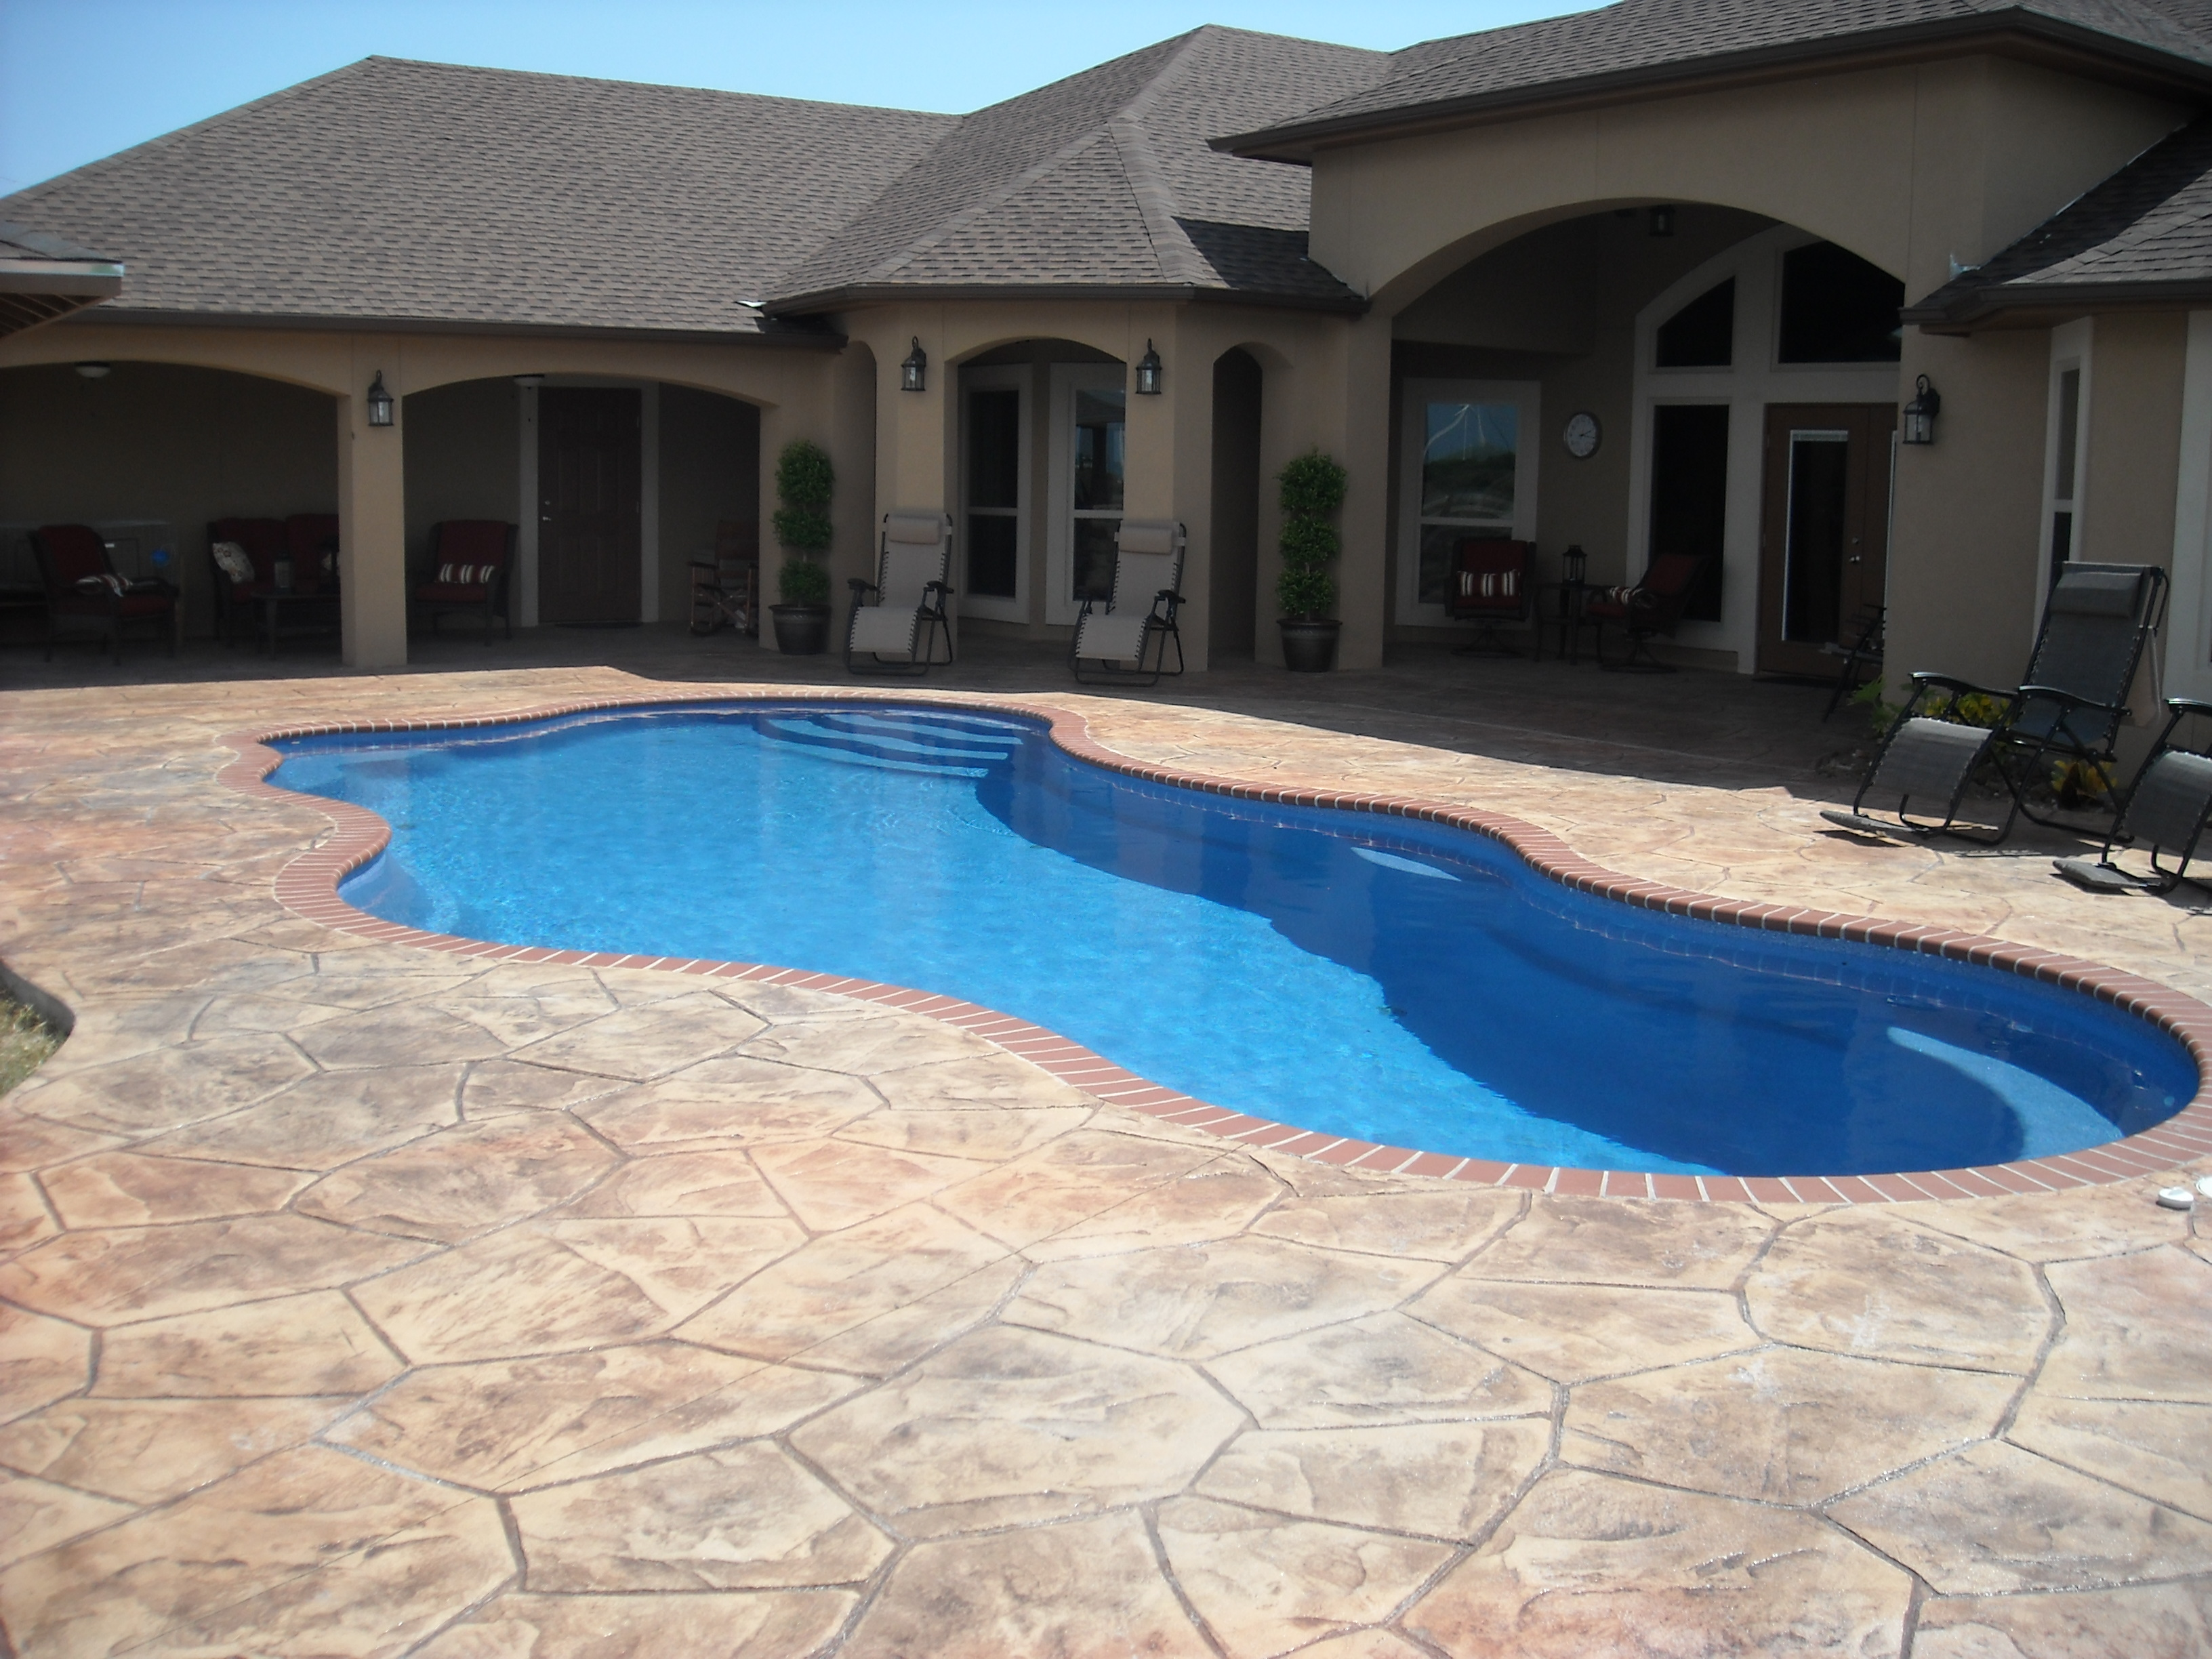 Swimming pool in backyard with decorate concrete surrounding it